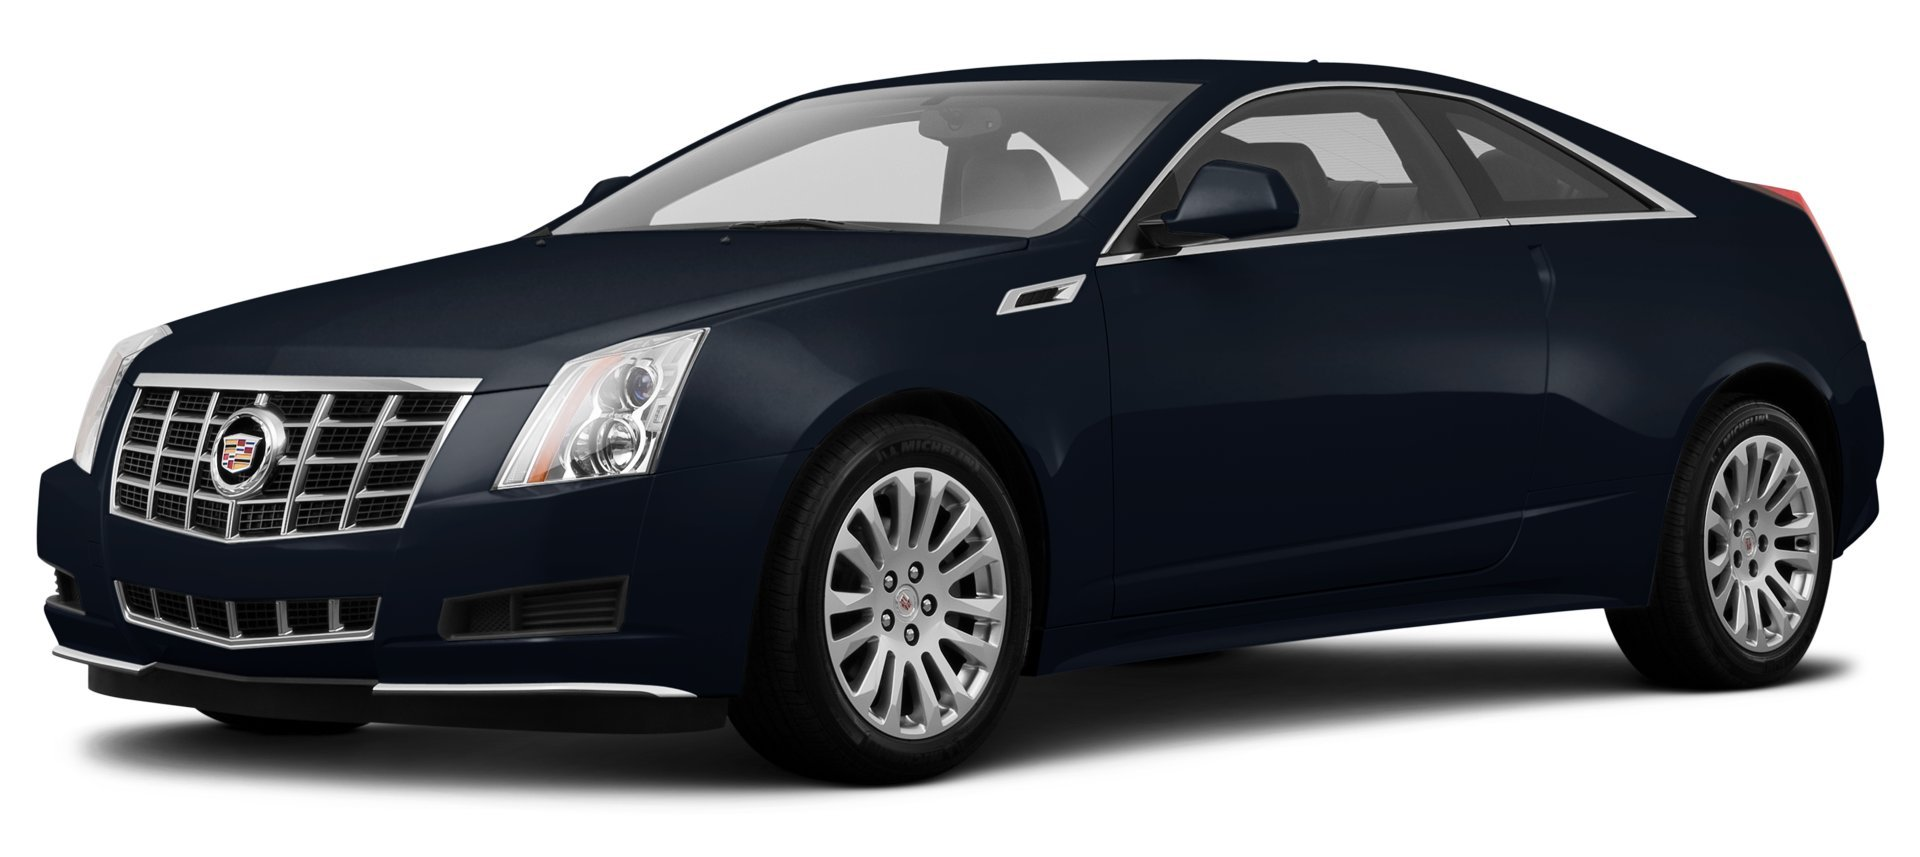 Amazon Com 2014 Cadillac Cts Reviews Images And Specs Vehicles